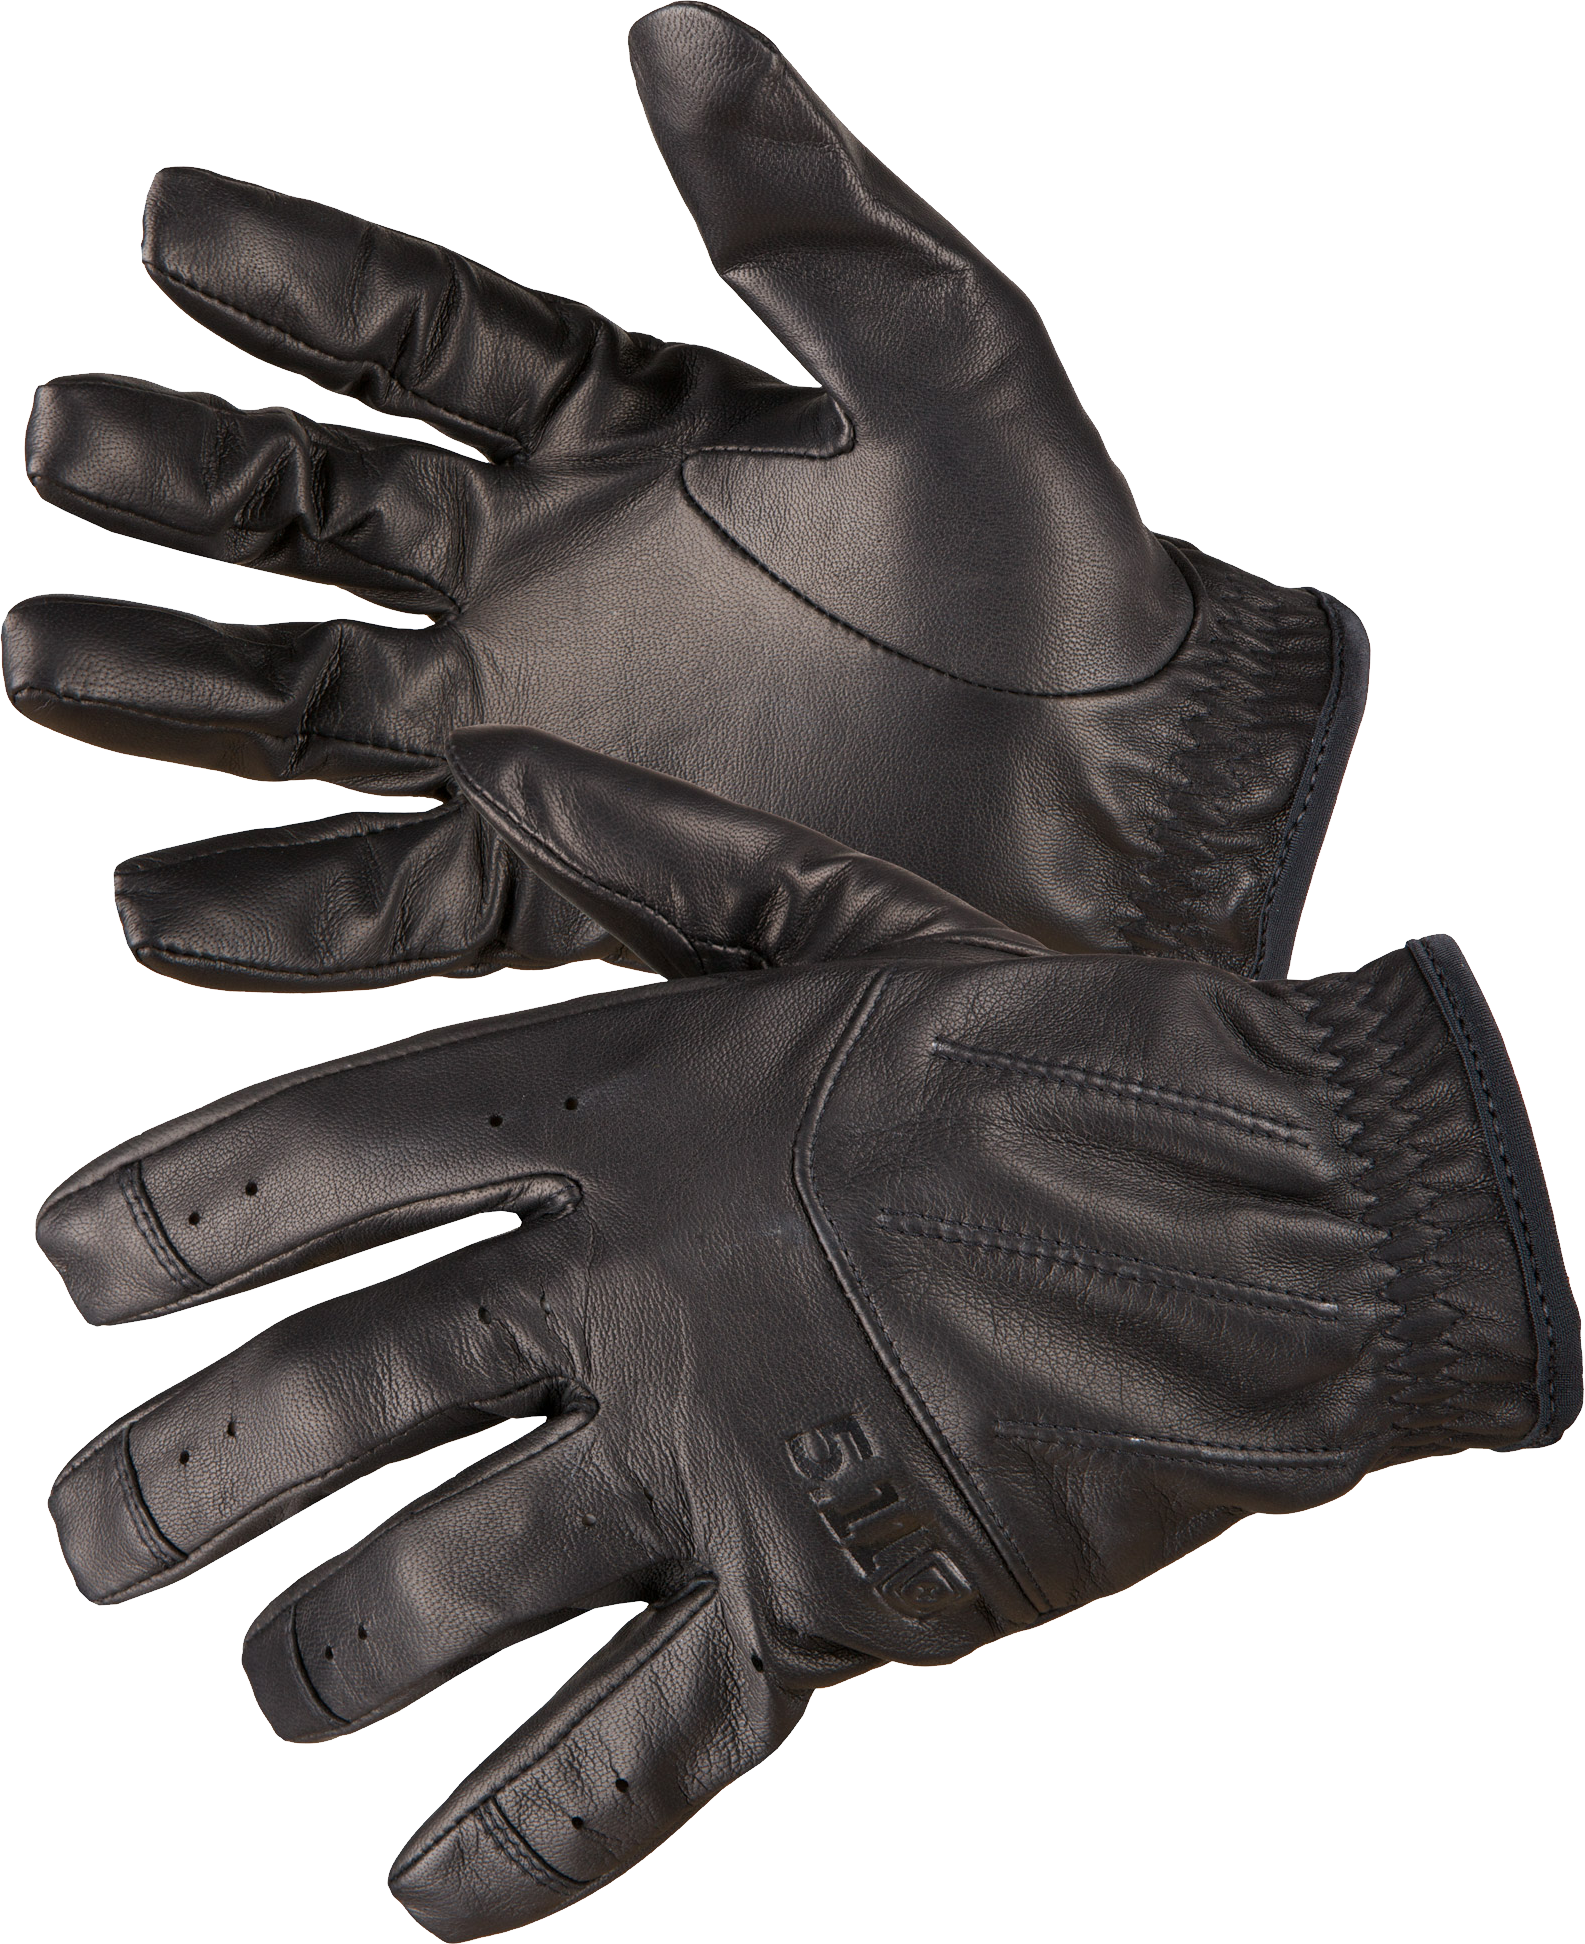 svg library stock Mittens clipart hand glove. Gloves png images free.